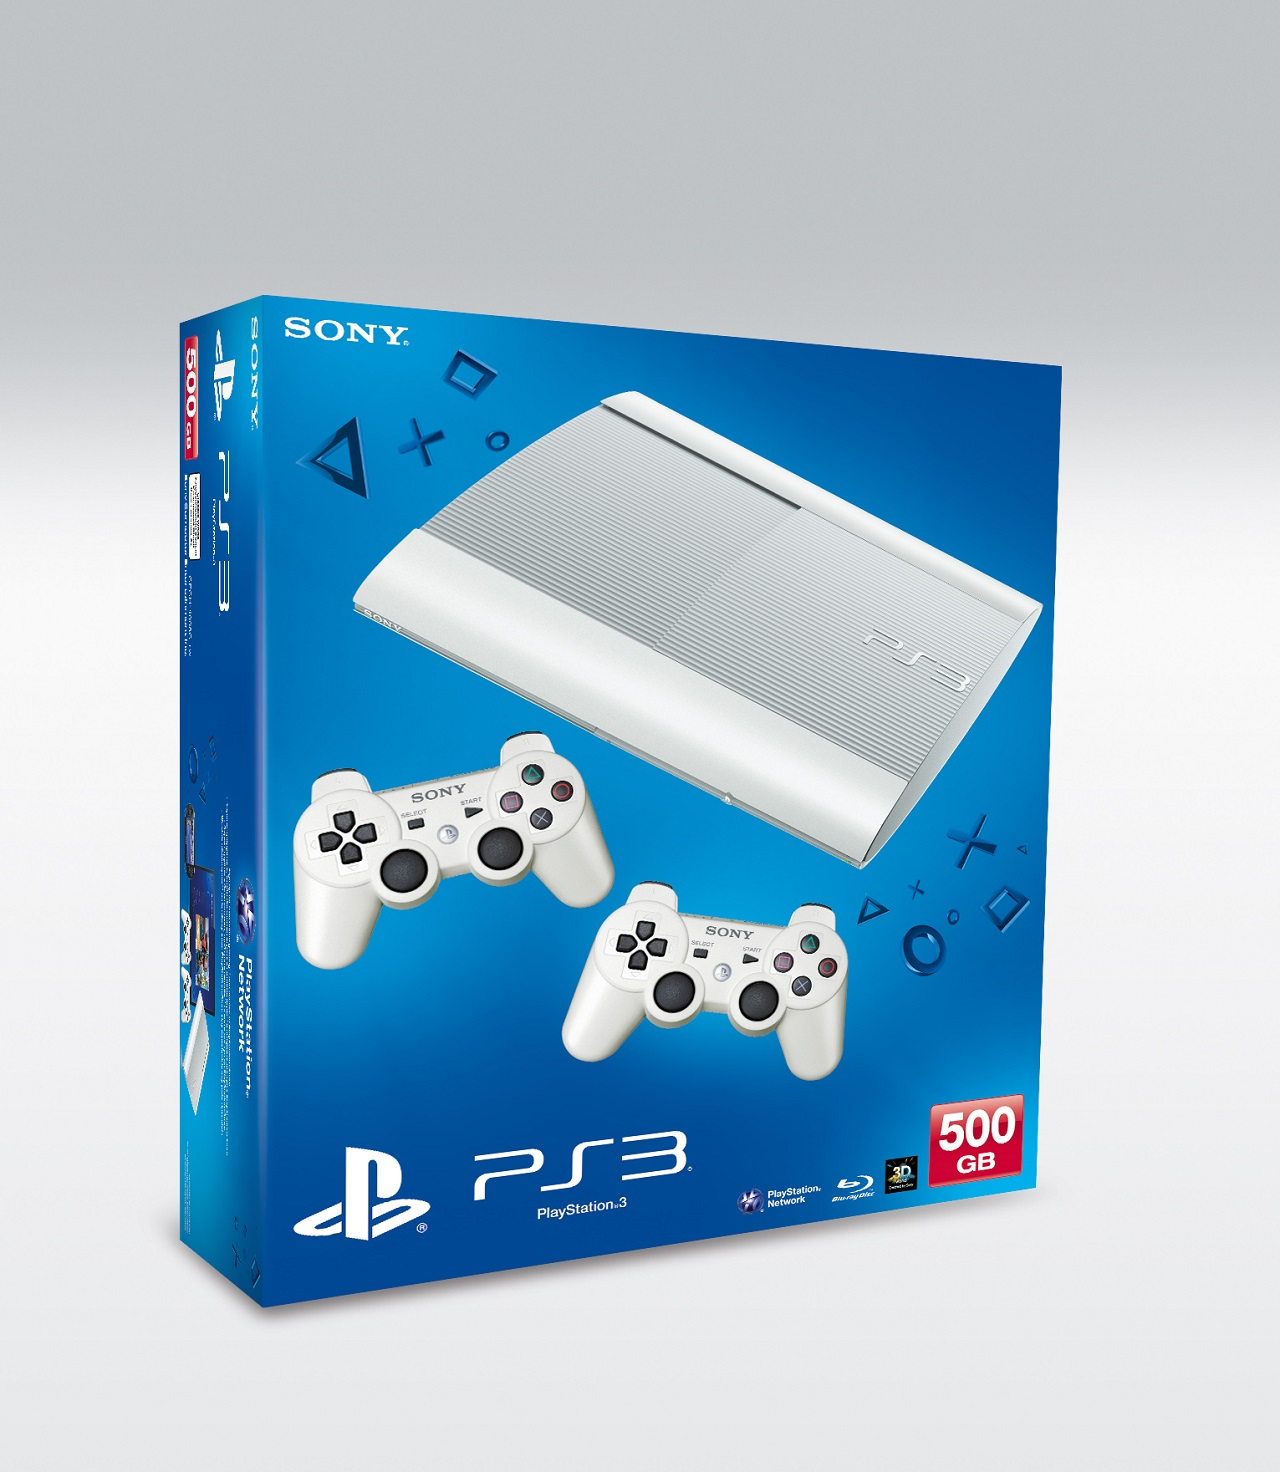 RUS_PS3_M500GB_DS3_White_3D